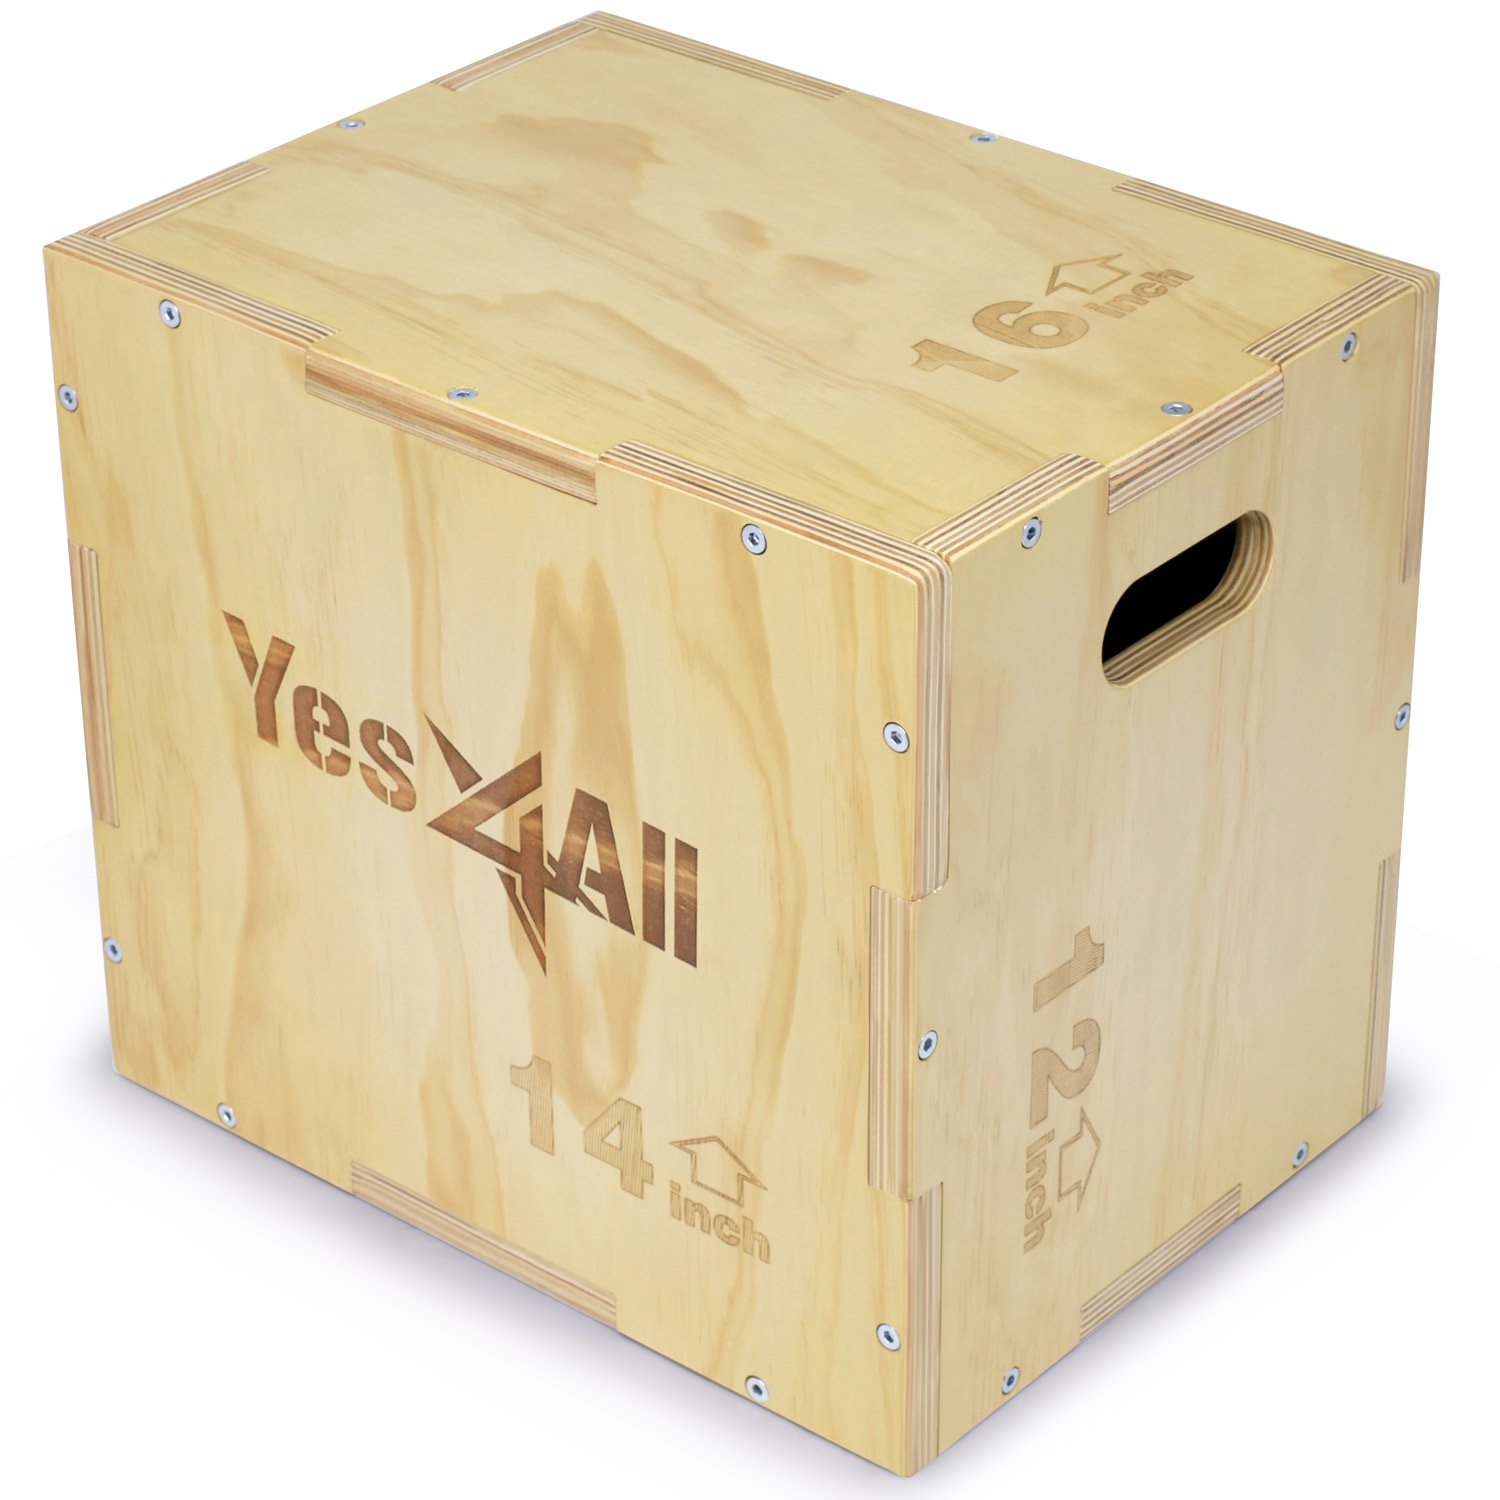 Yes4All 3 in 1 Wood Plyo Box with 4 Different Sizes 16 14 12 20 18 16 24 20 16 30 24 20 Included Packaged Screws for Easy Assembly